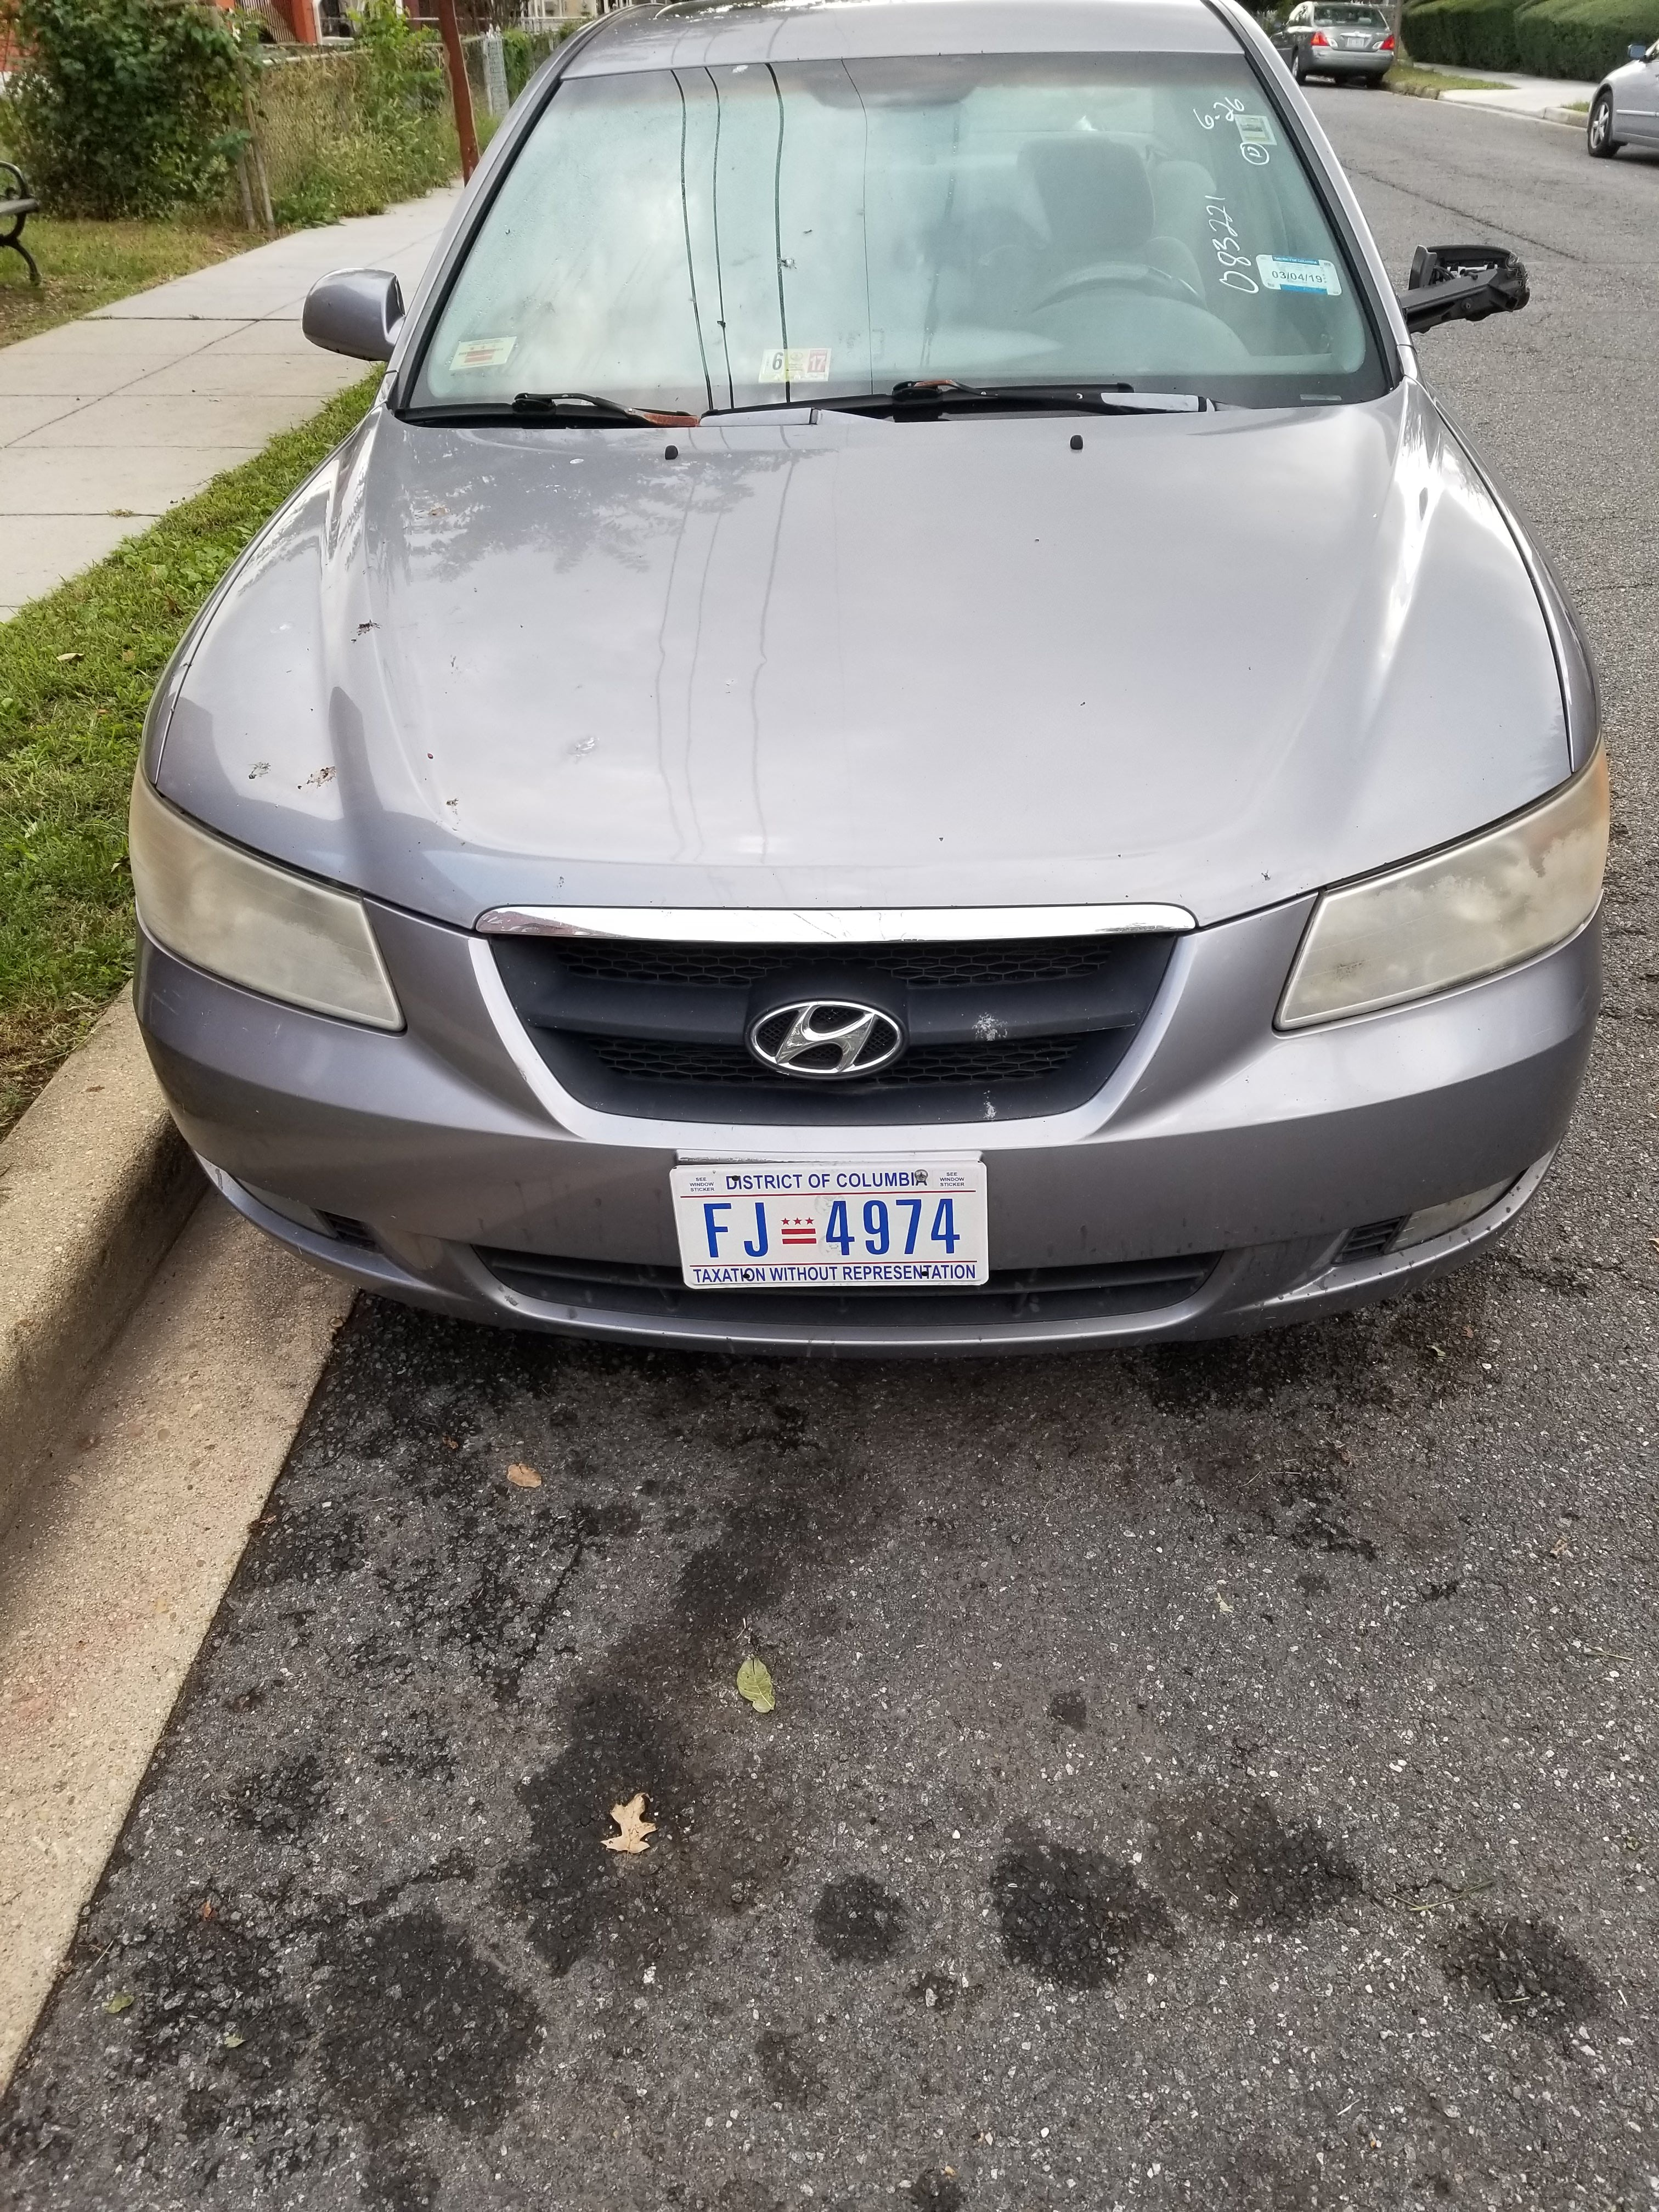 Junk 2006 Hyundai Sonata in Washington